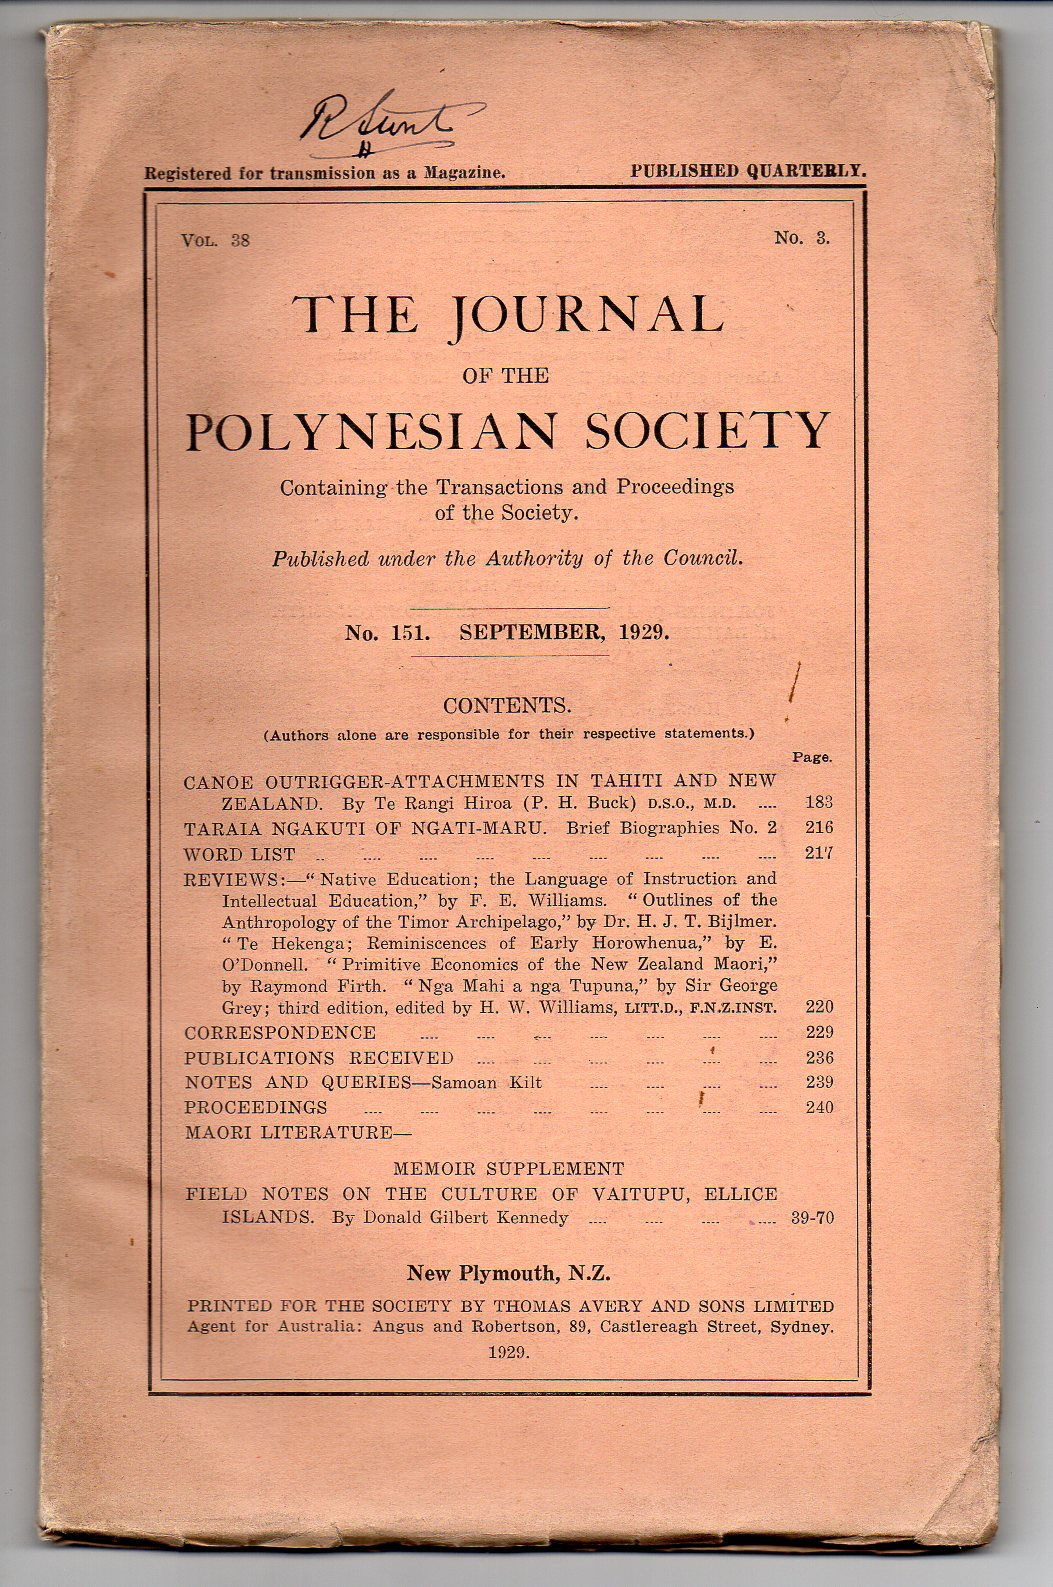 Image for The Journal of the Polynesian Society. No. 151. September, 1929 - Vol. 38, No. 3.